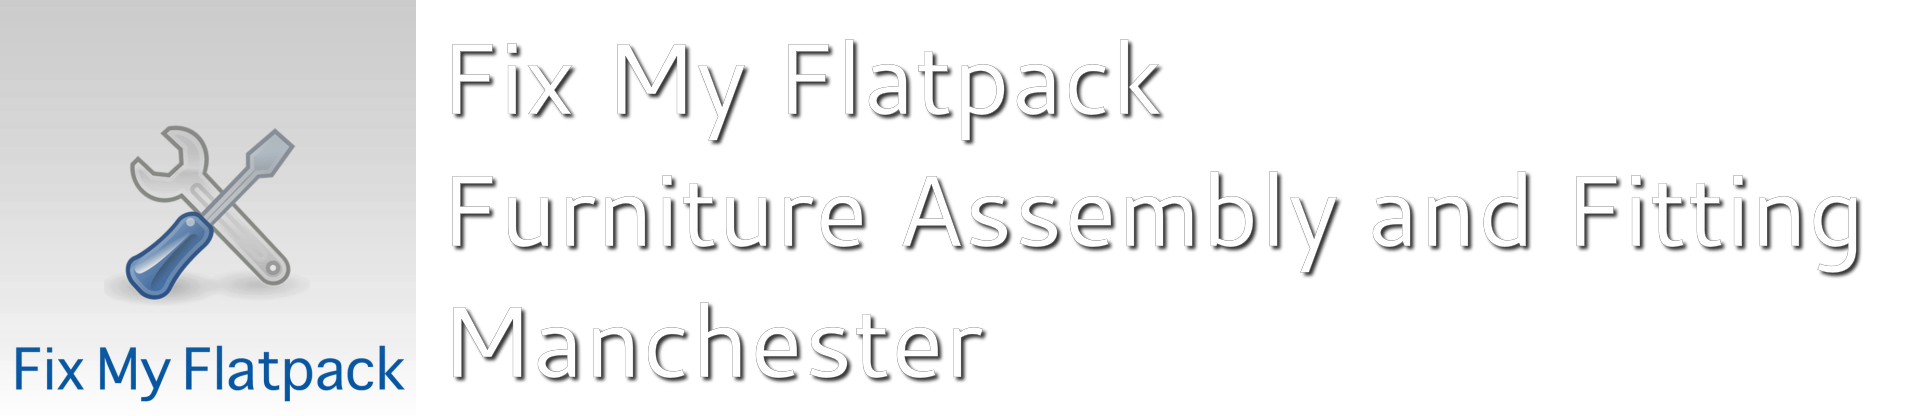 Fix My Flatpack - Flat Pack Furniture Assembly and Fitting Manchester